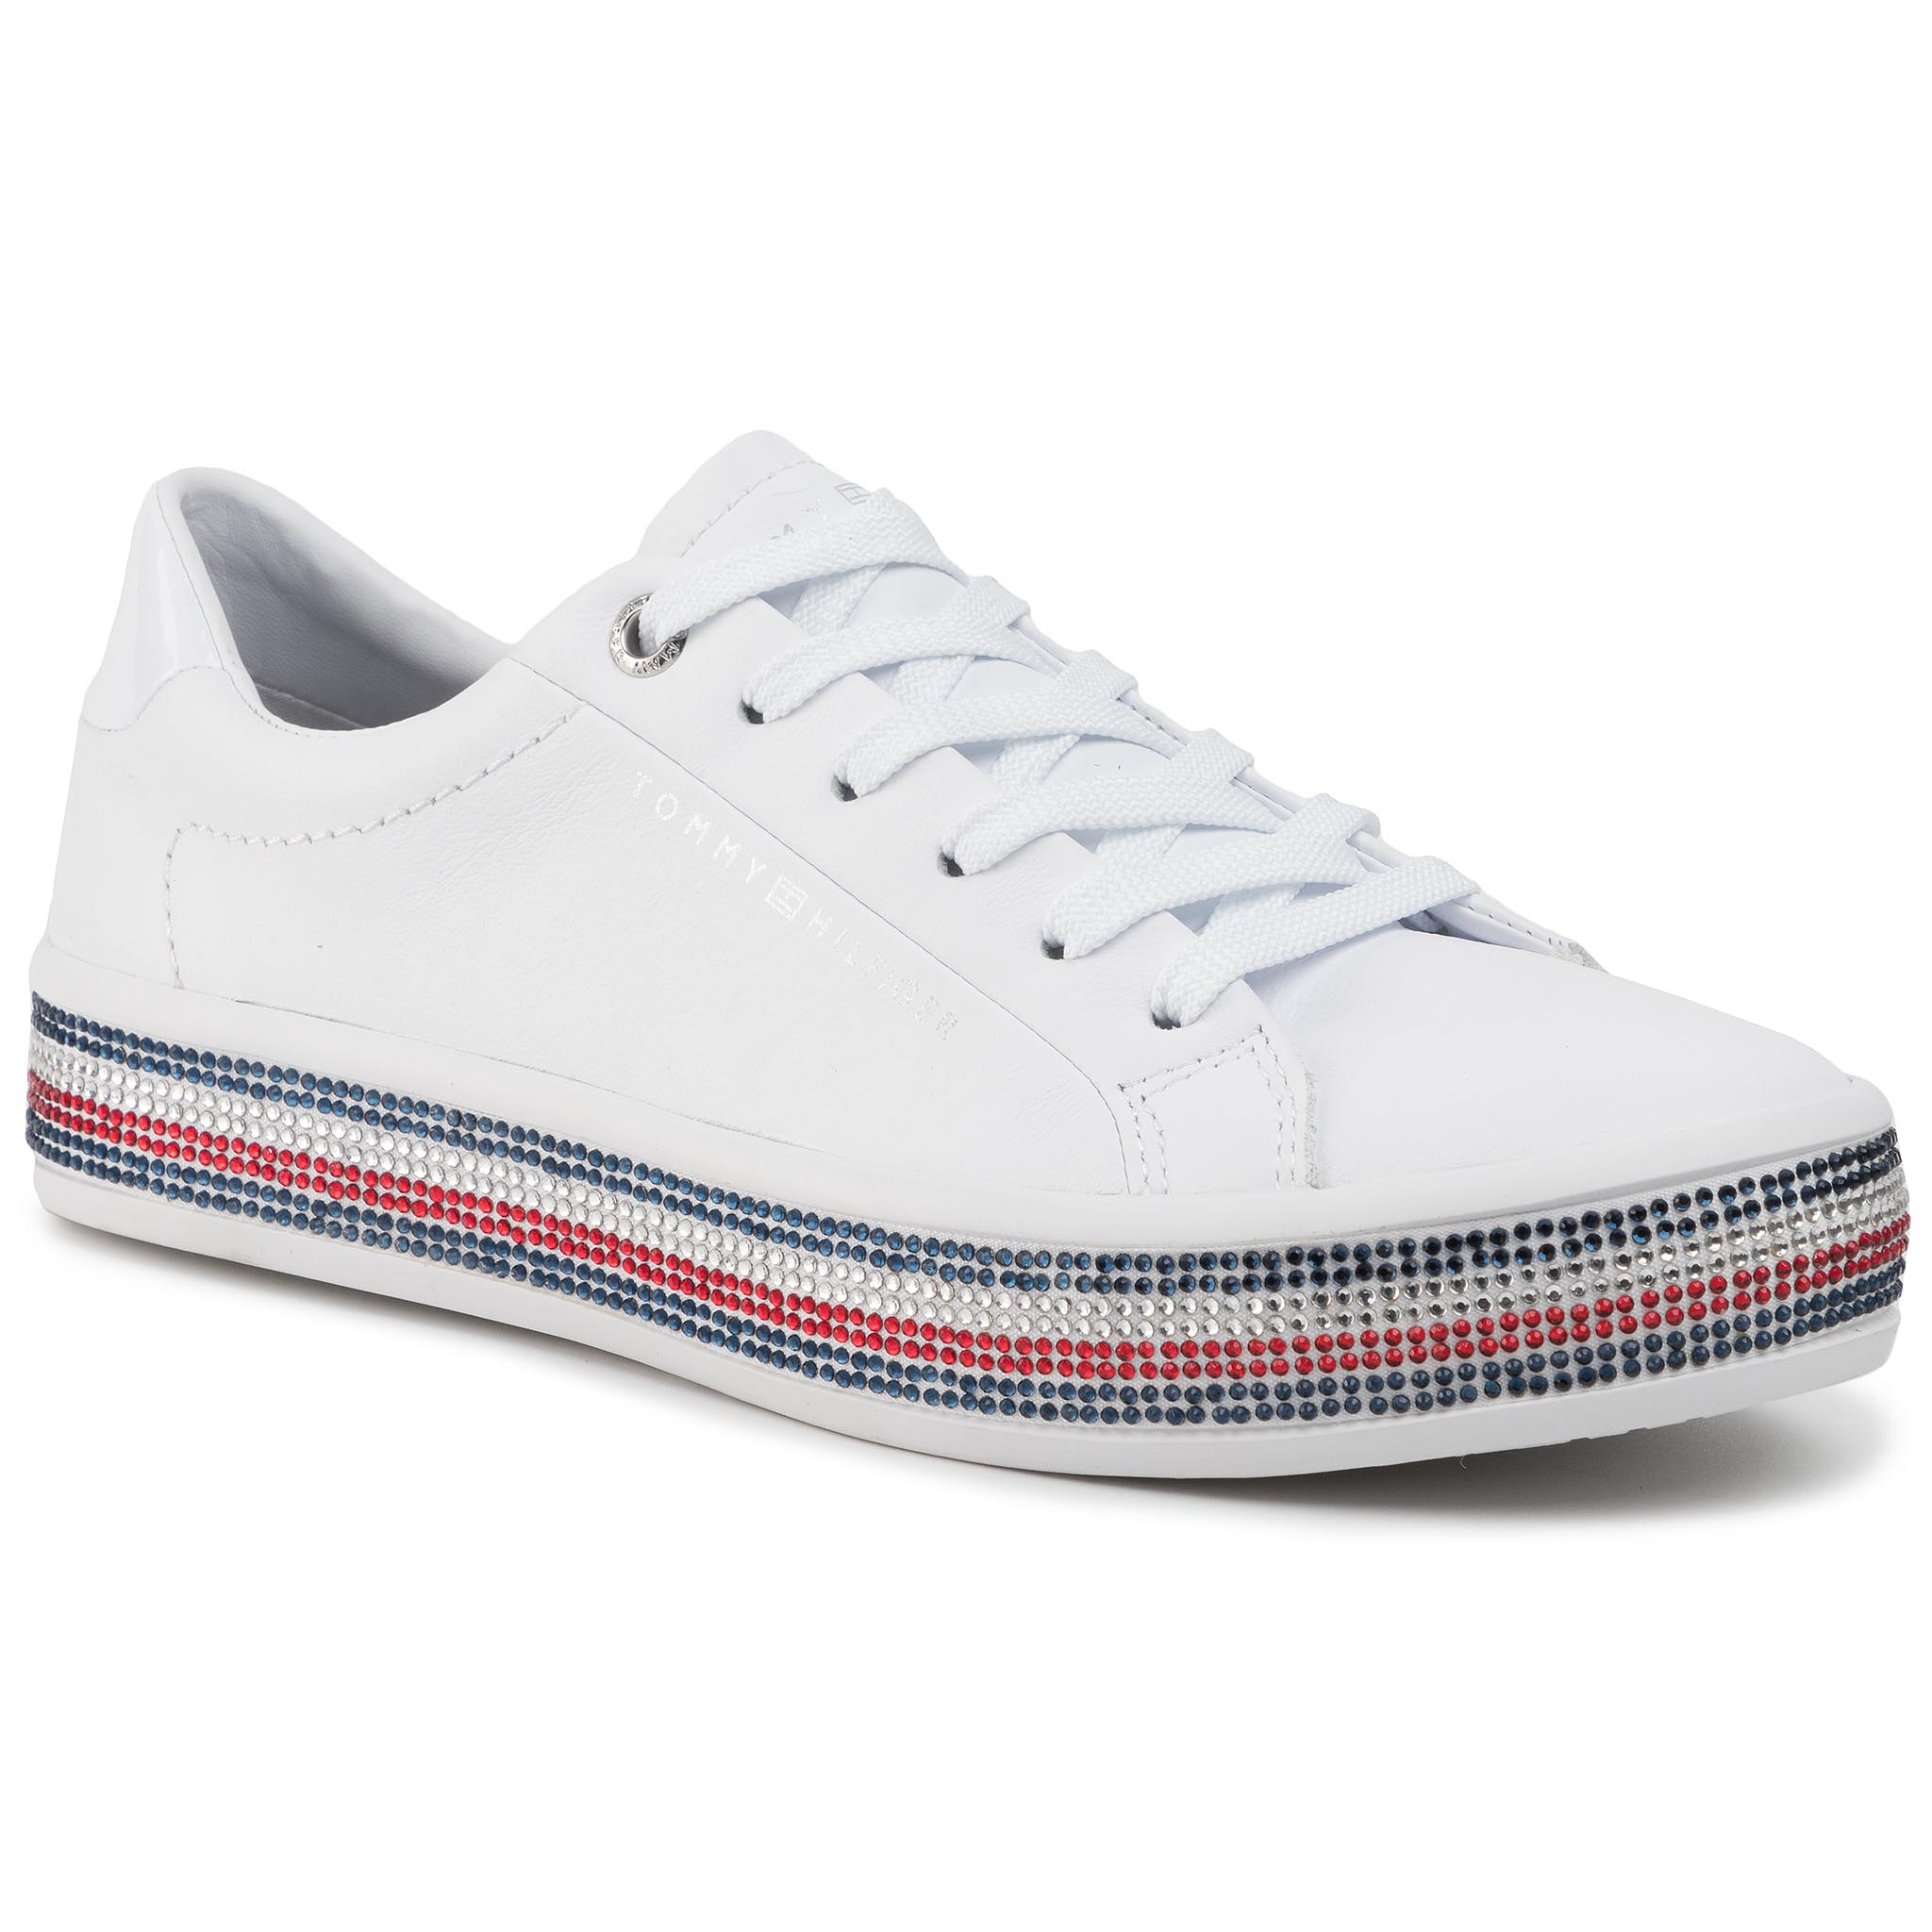 Sneakers TOMMY HILFIGER - Jeweled Sneaker FW0FW04596 YBS